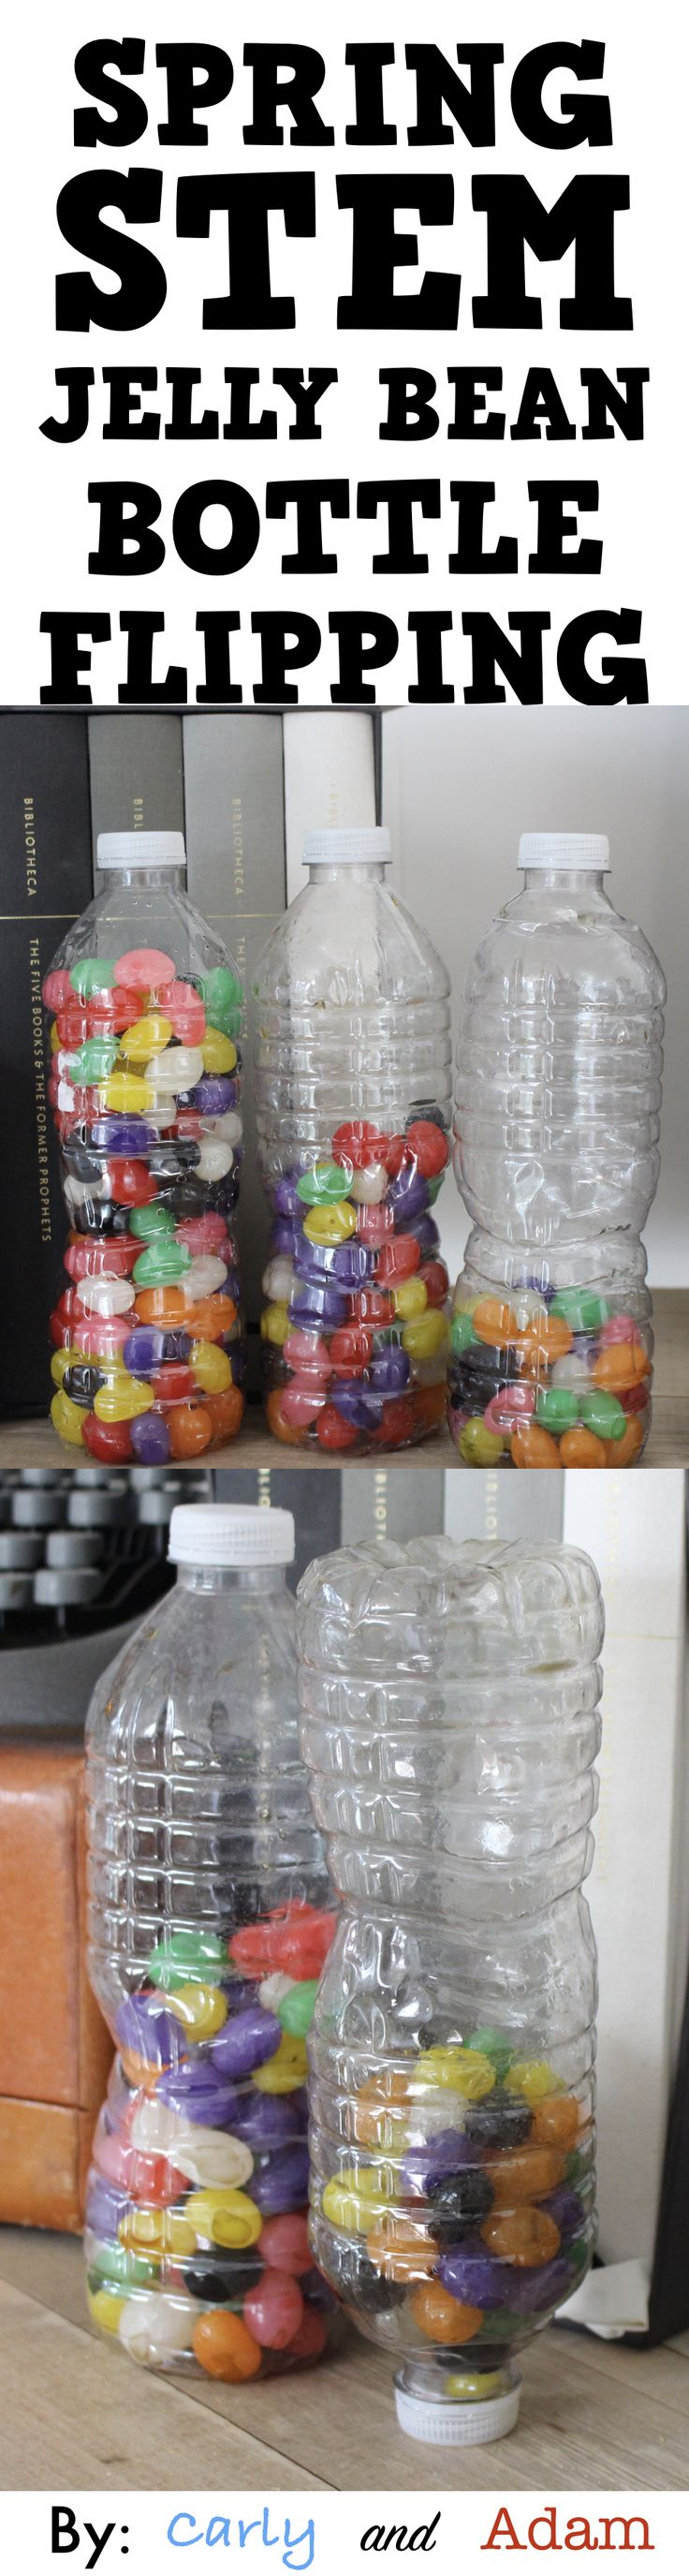 Get your students pumped up for spring and STEM! Conduct an experiment to see which water bottle filled with jelly beans will land vertically the most times. Students make a prediction and test their hypothesis. After they have completed their activity, there is time for reflection on what worked and what didn't. It aligns with the NGSS (Next Generation Science Standards).